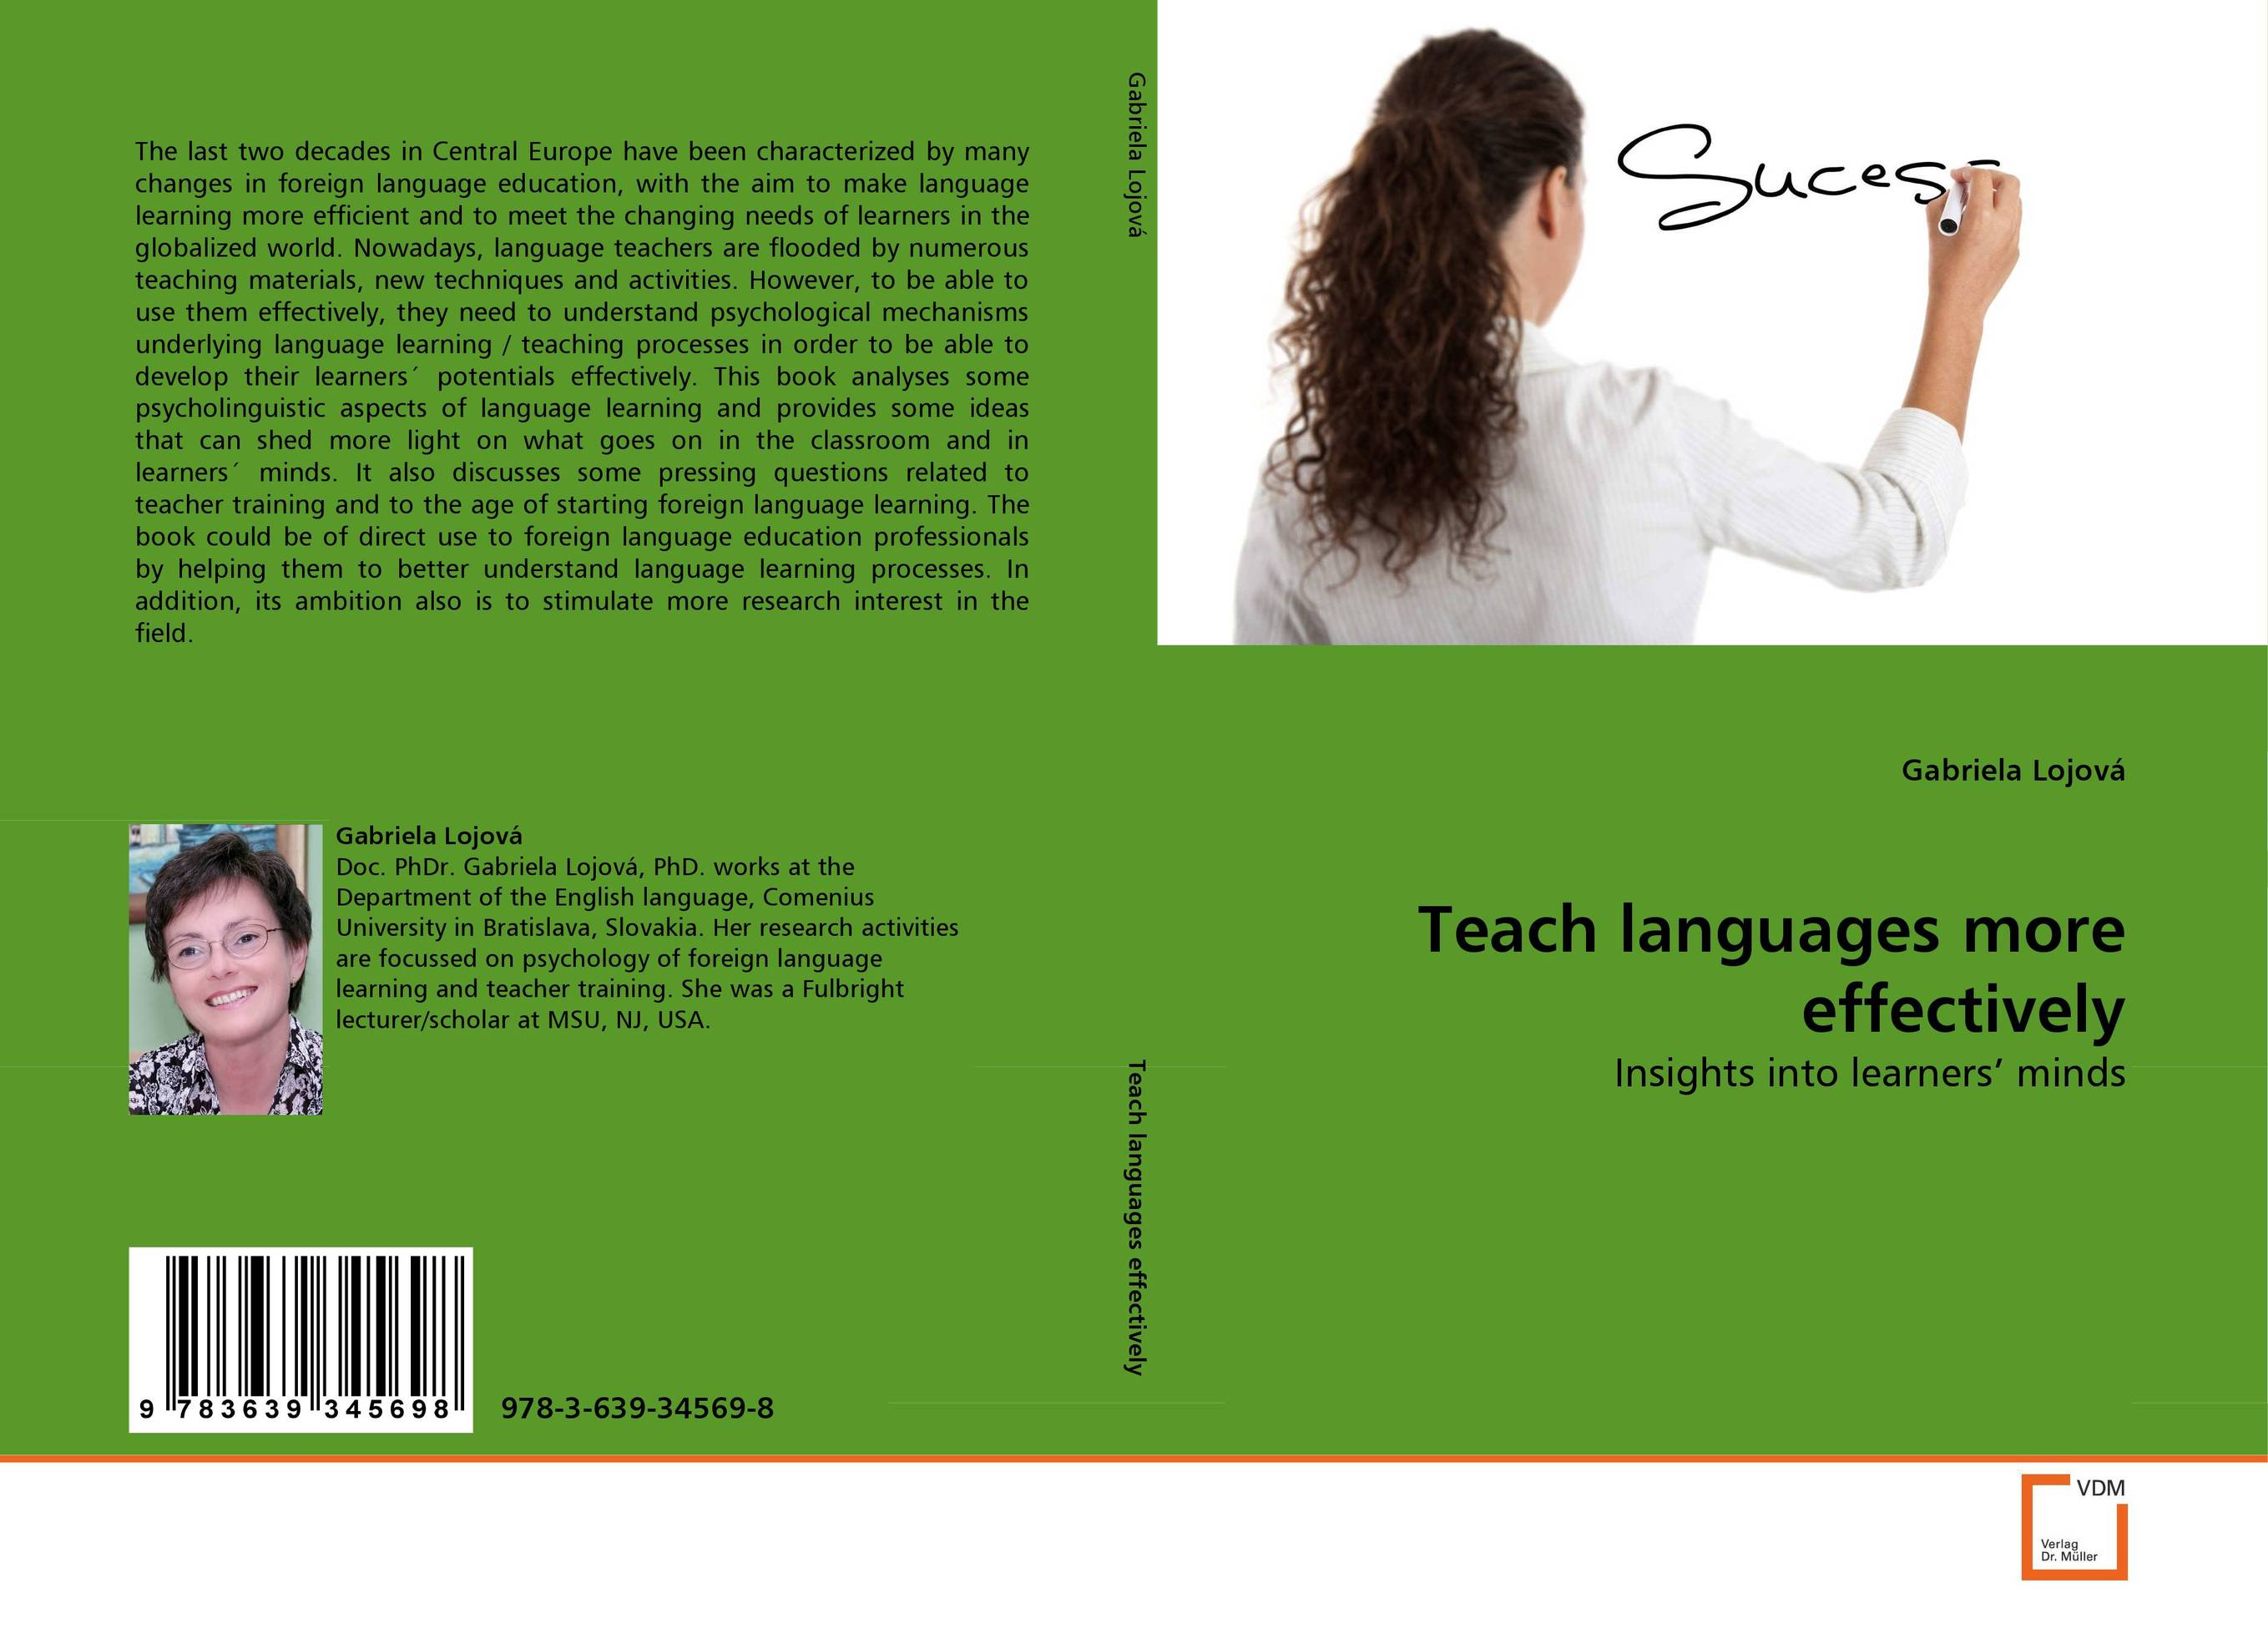 Teach languages more effectively muhammad farhan khan and muhammad asif zakriyya speech recognition with efficient use of support vector machines